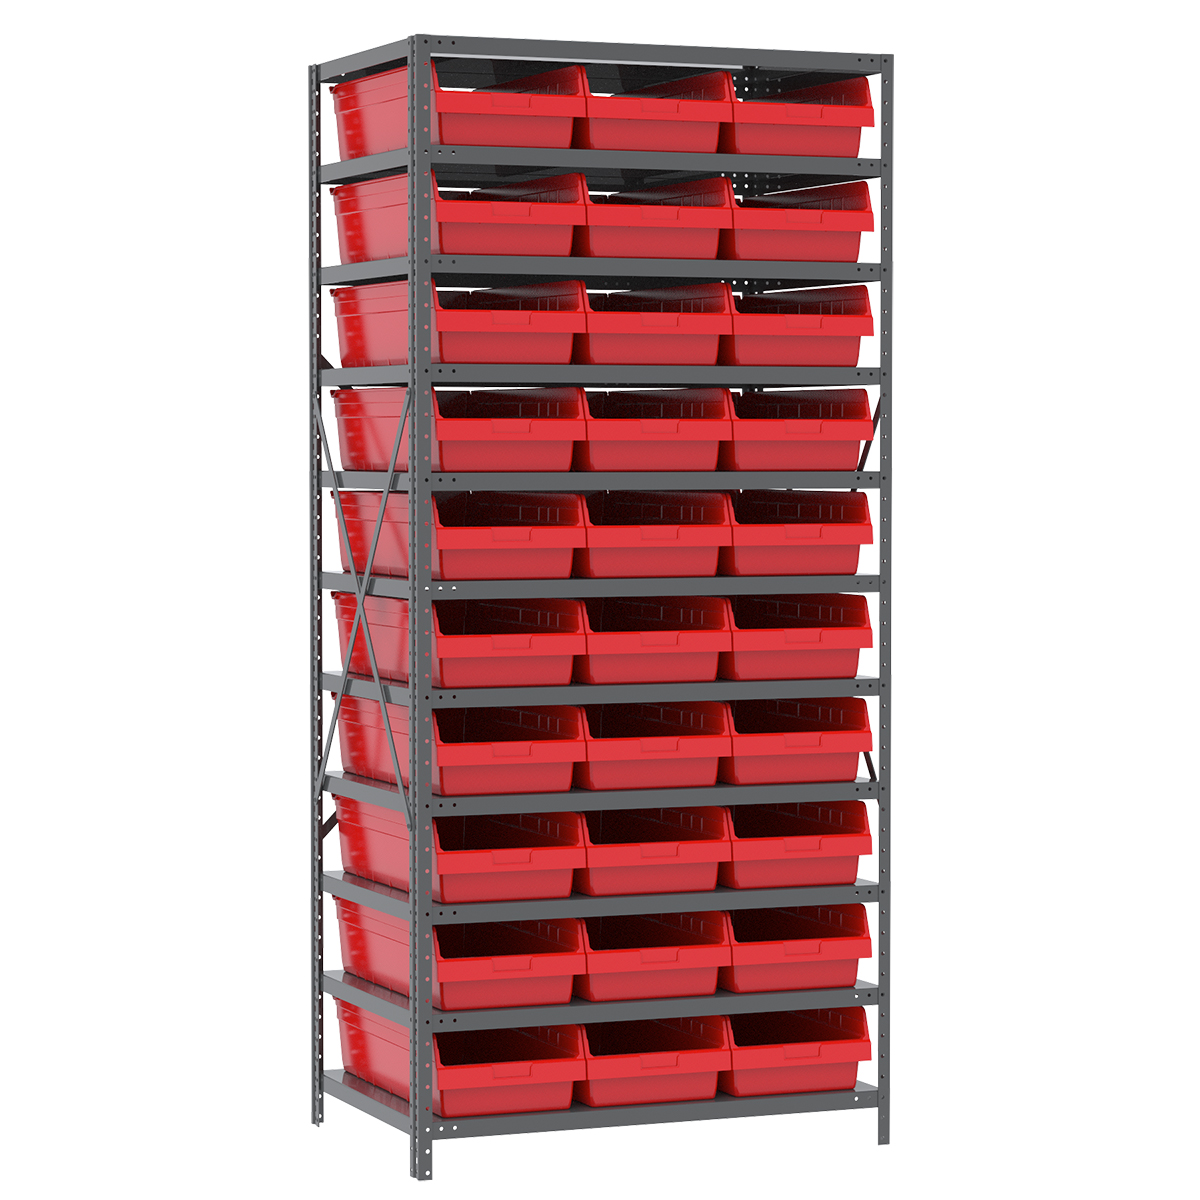 Steel Shelving Kit, 24x36x79, 30 Bins, Gray/Red.  This item sold in carton quantities of 1.